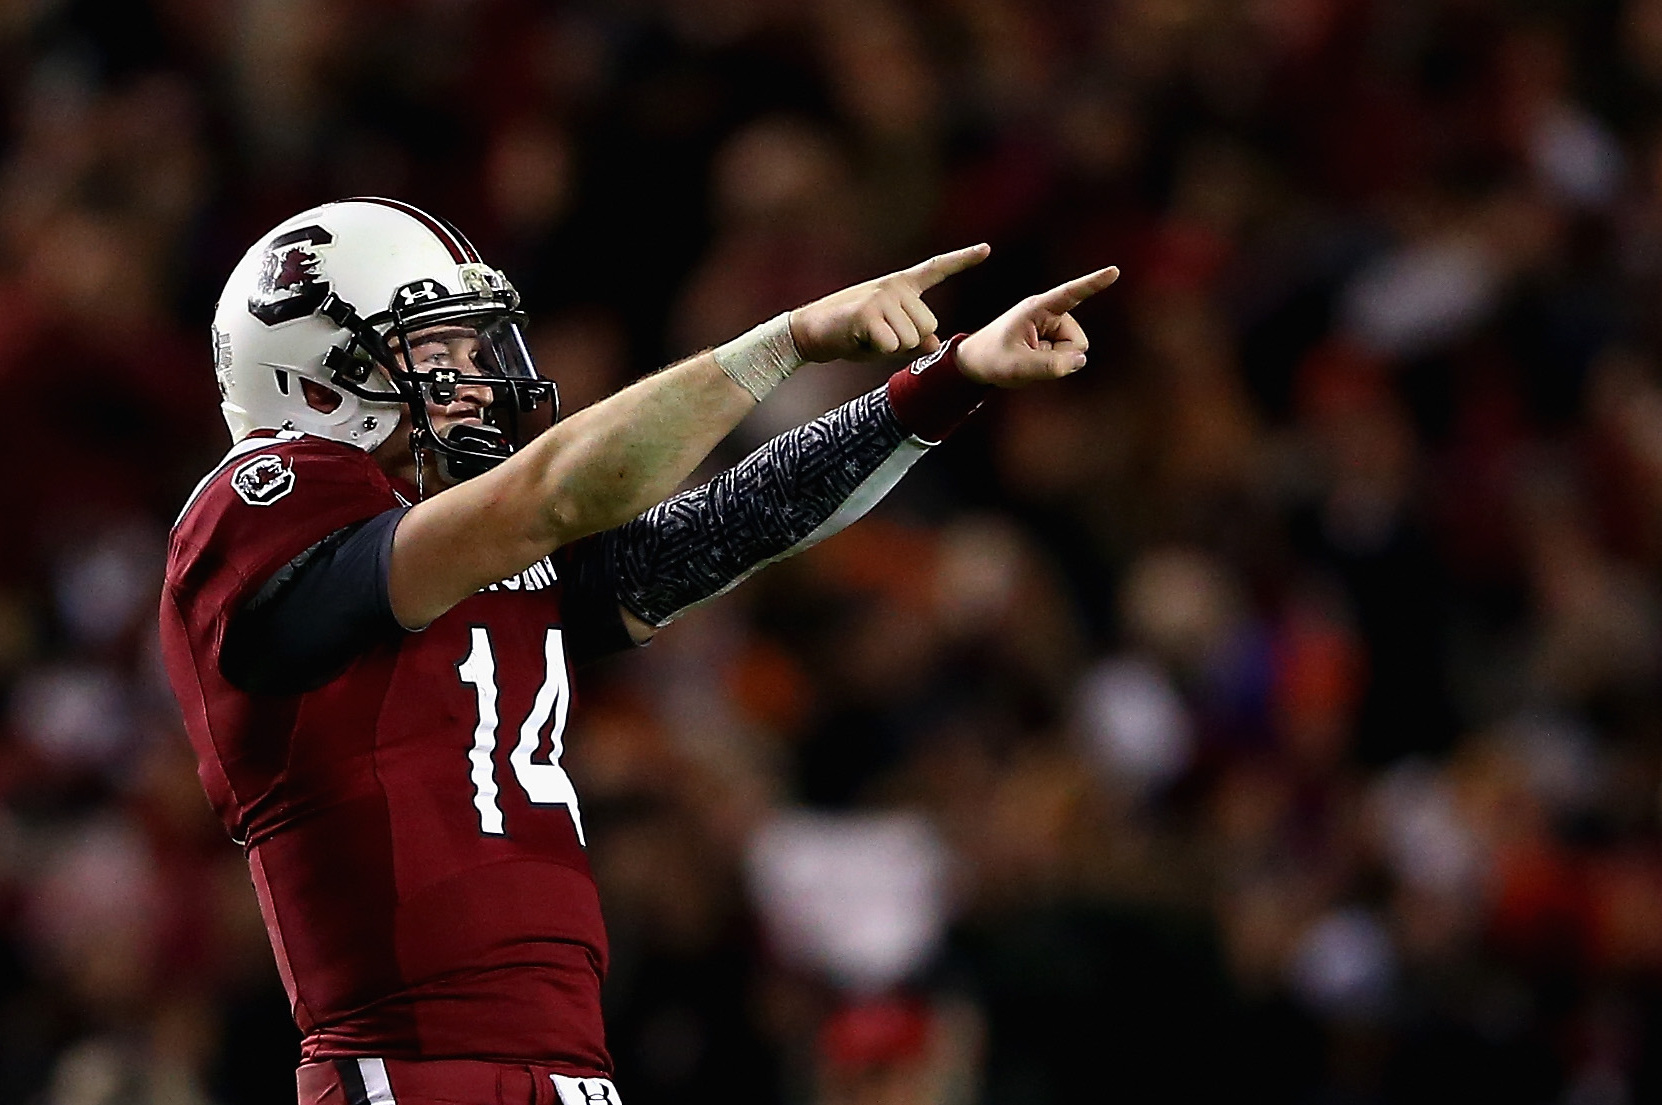 Wisconsin vs south carolina betting odds back and lay betting football line